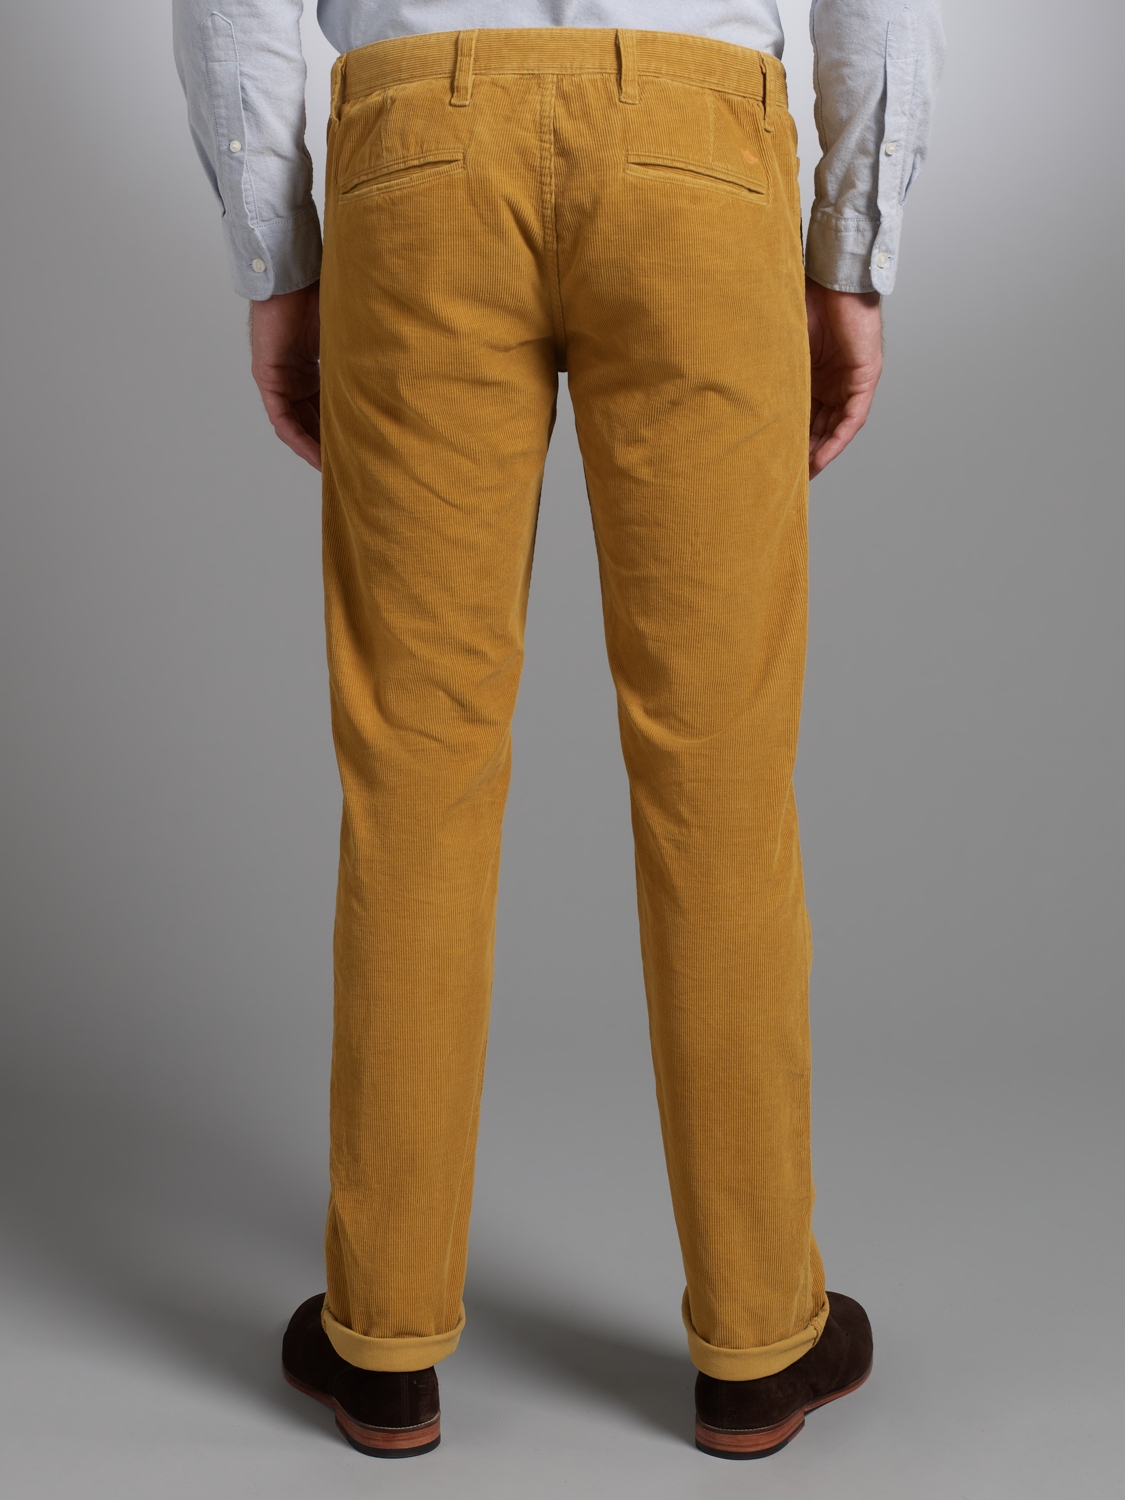 Dockers Dockers Alpha Khaki Washed Corduroy Trousers Gold